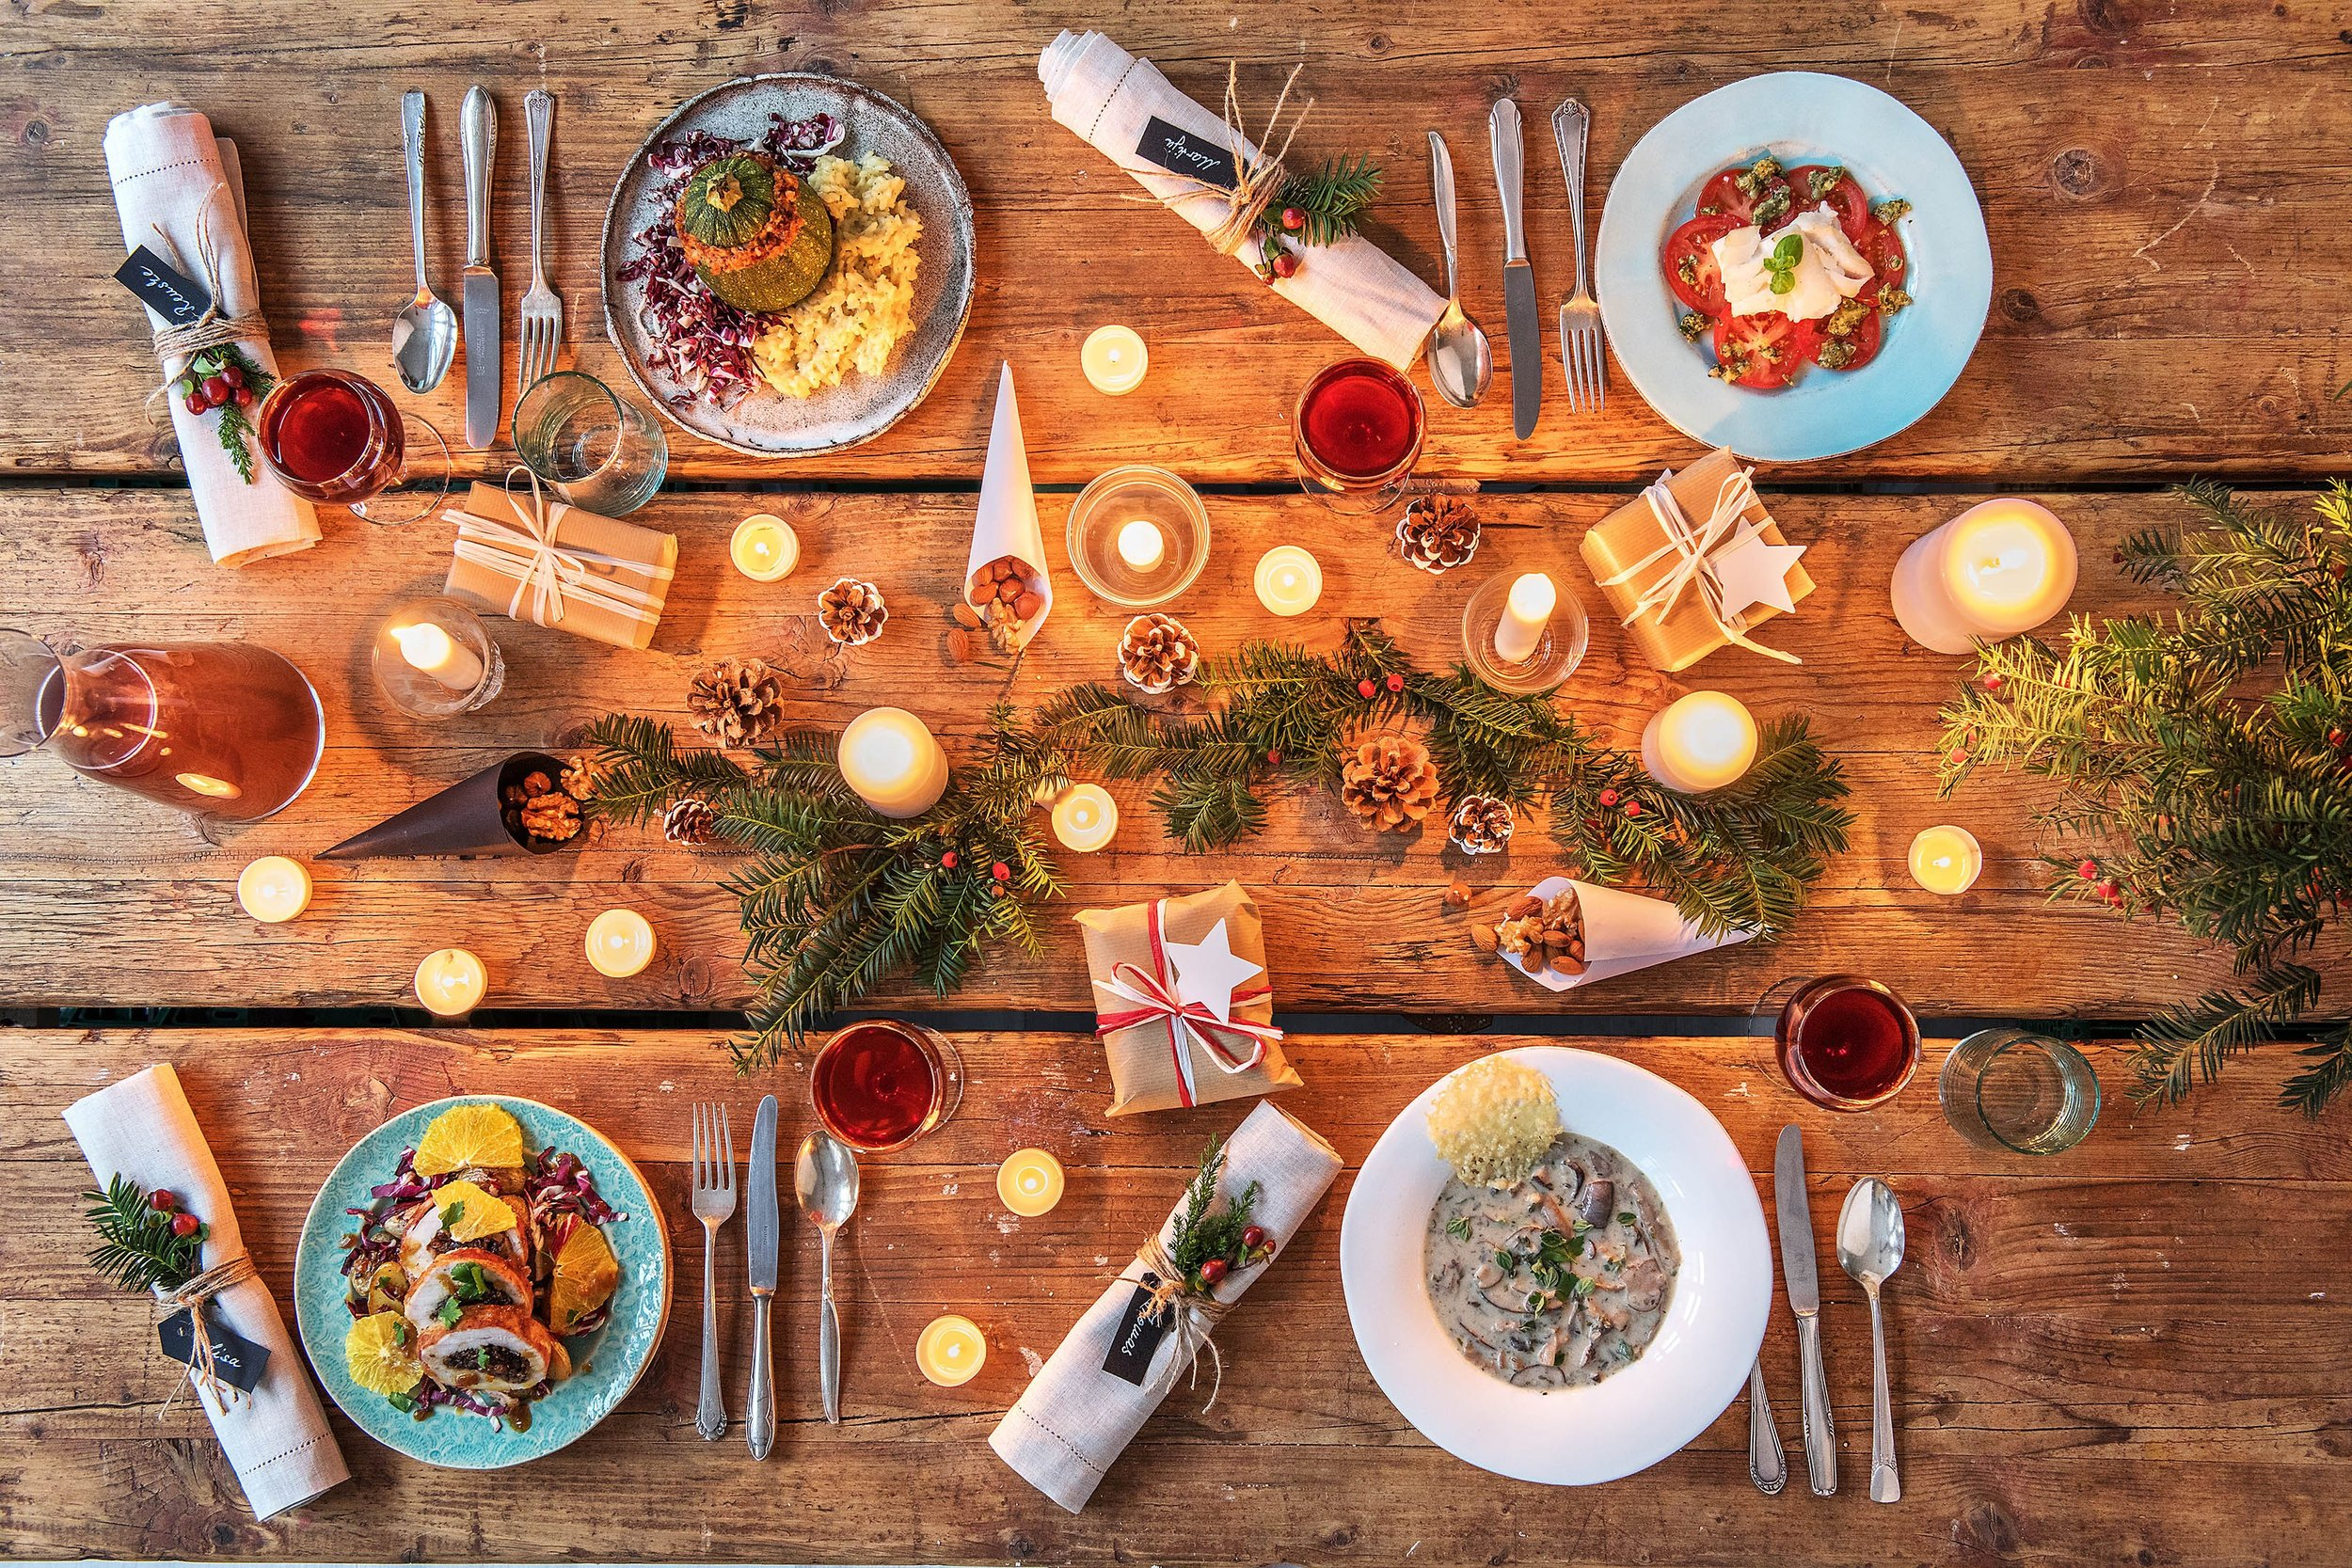 Cooking w/ FHK - Farmhouse Food for Thought: Holiday Edition - December 14, 2017